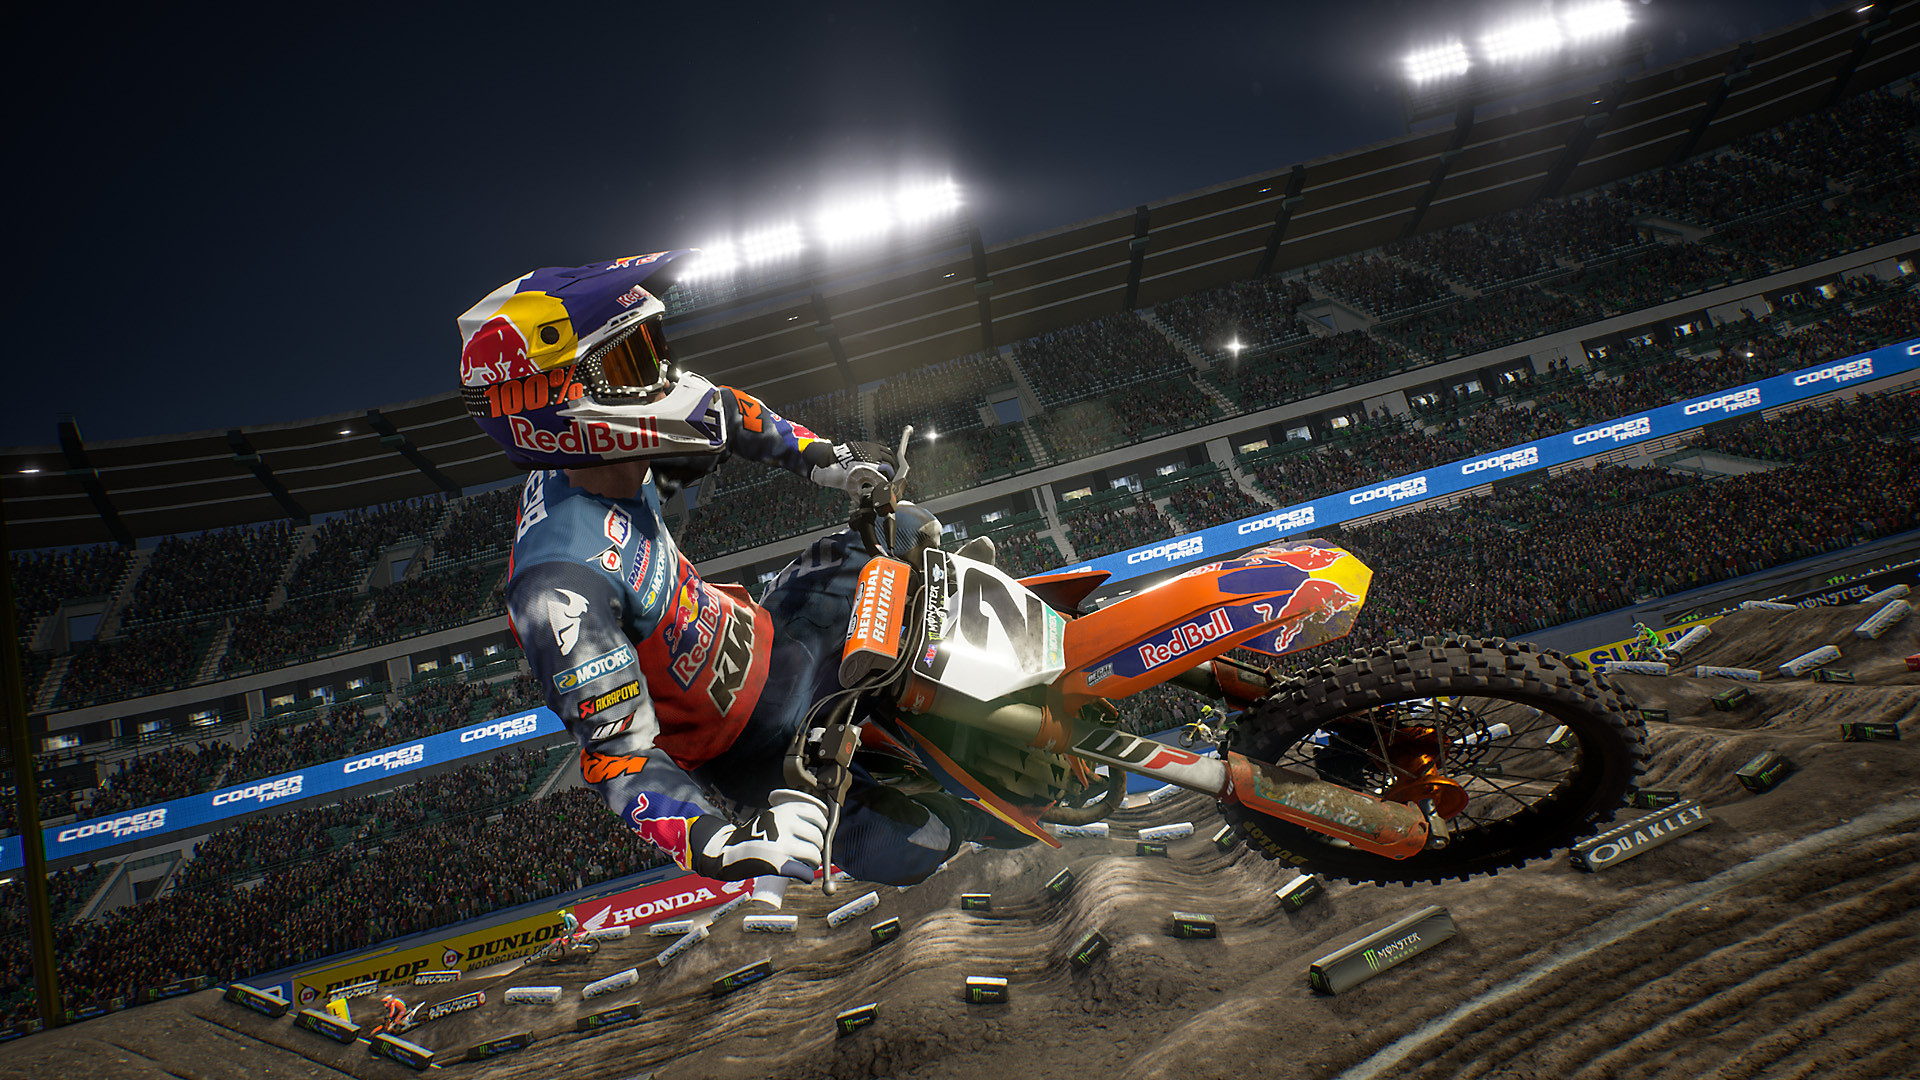 monster energy supercross the official videogame 3 screenshot 05 ps4 us 07oct2019?$native nt$